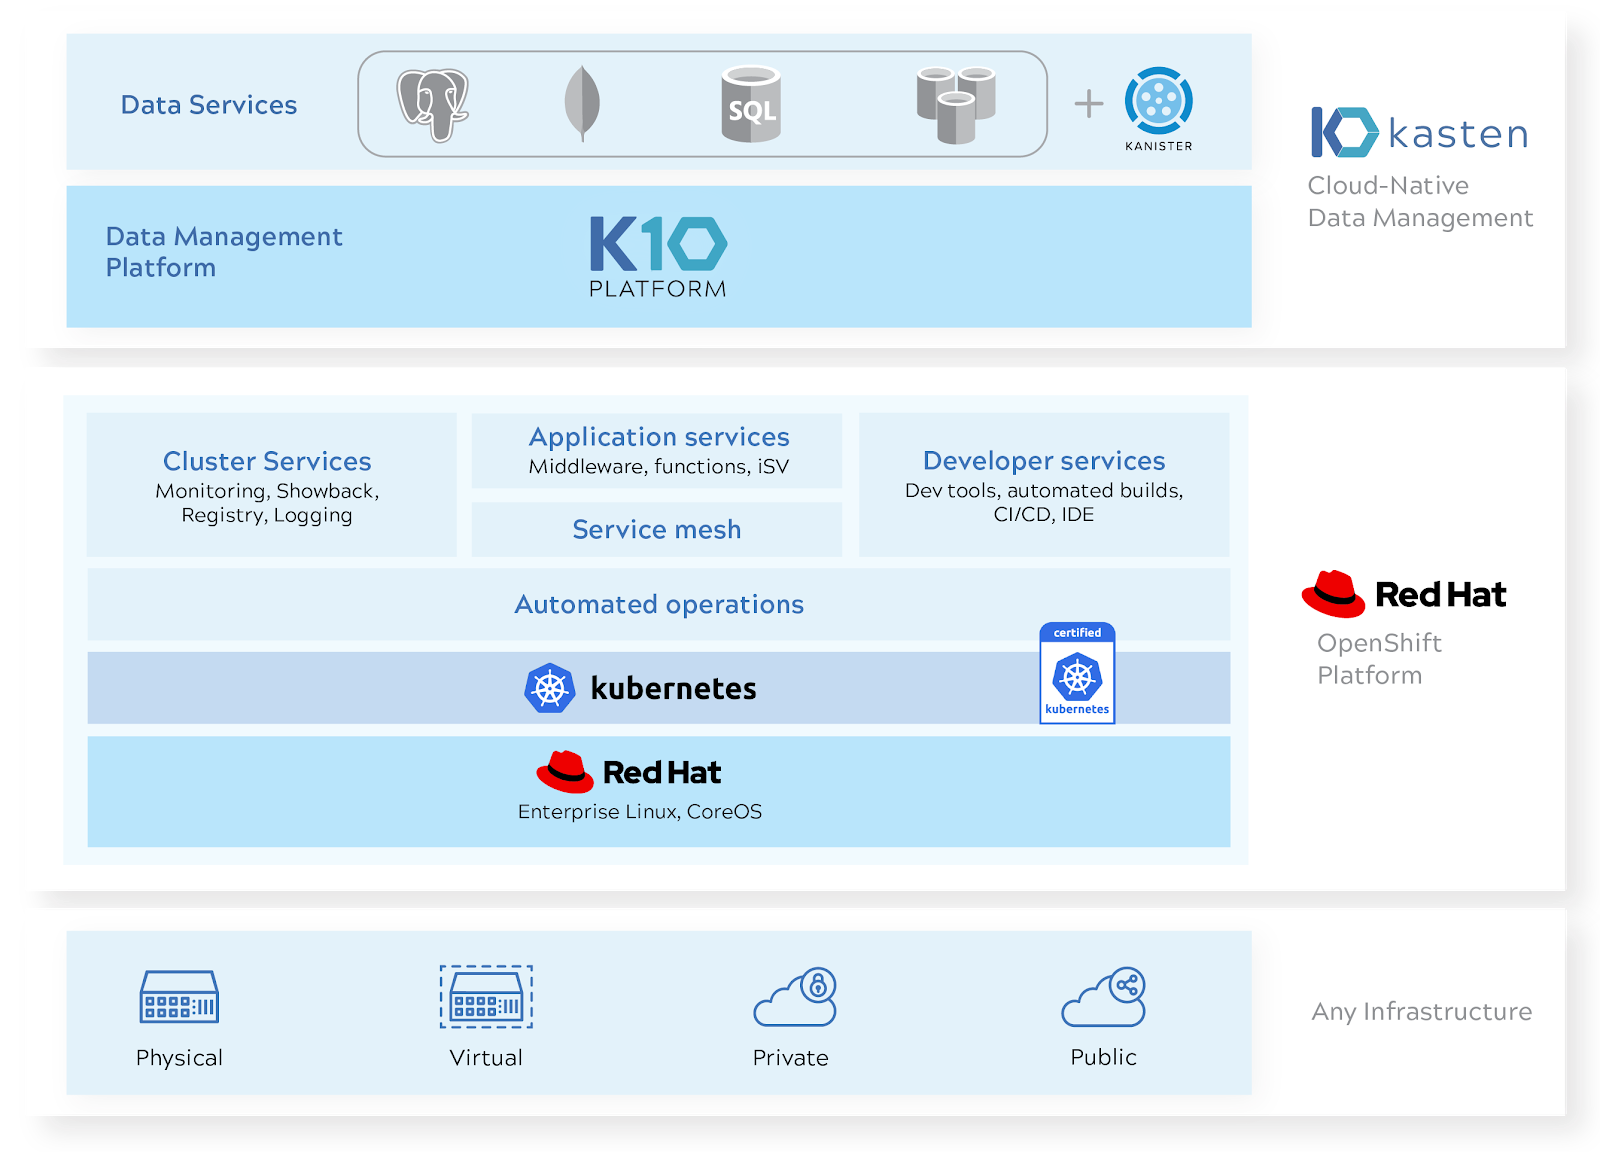 k10-redhat diagram